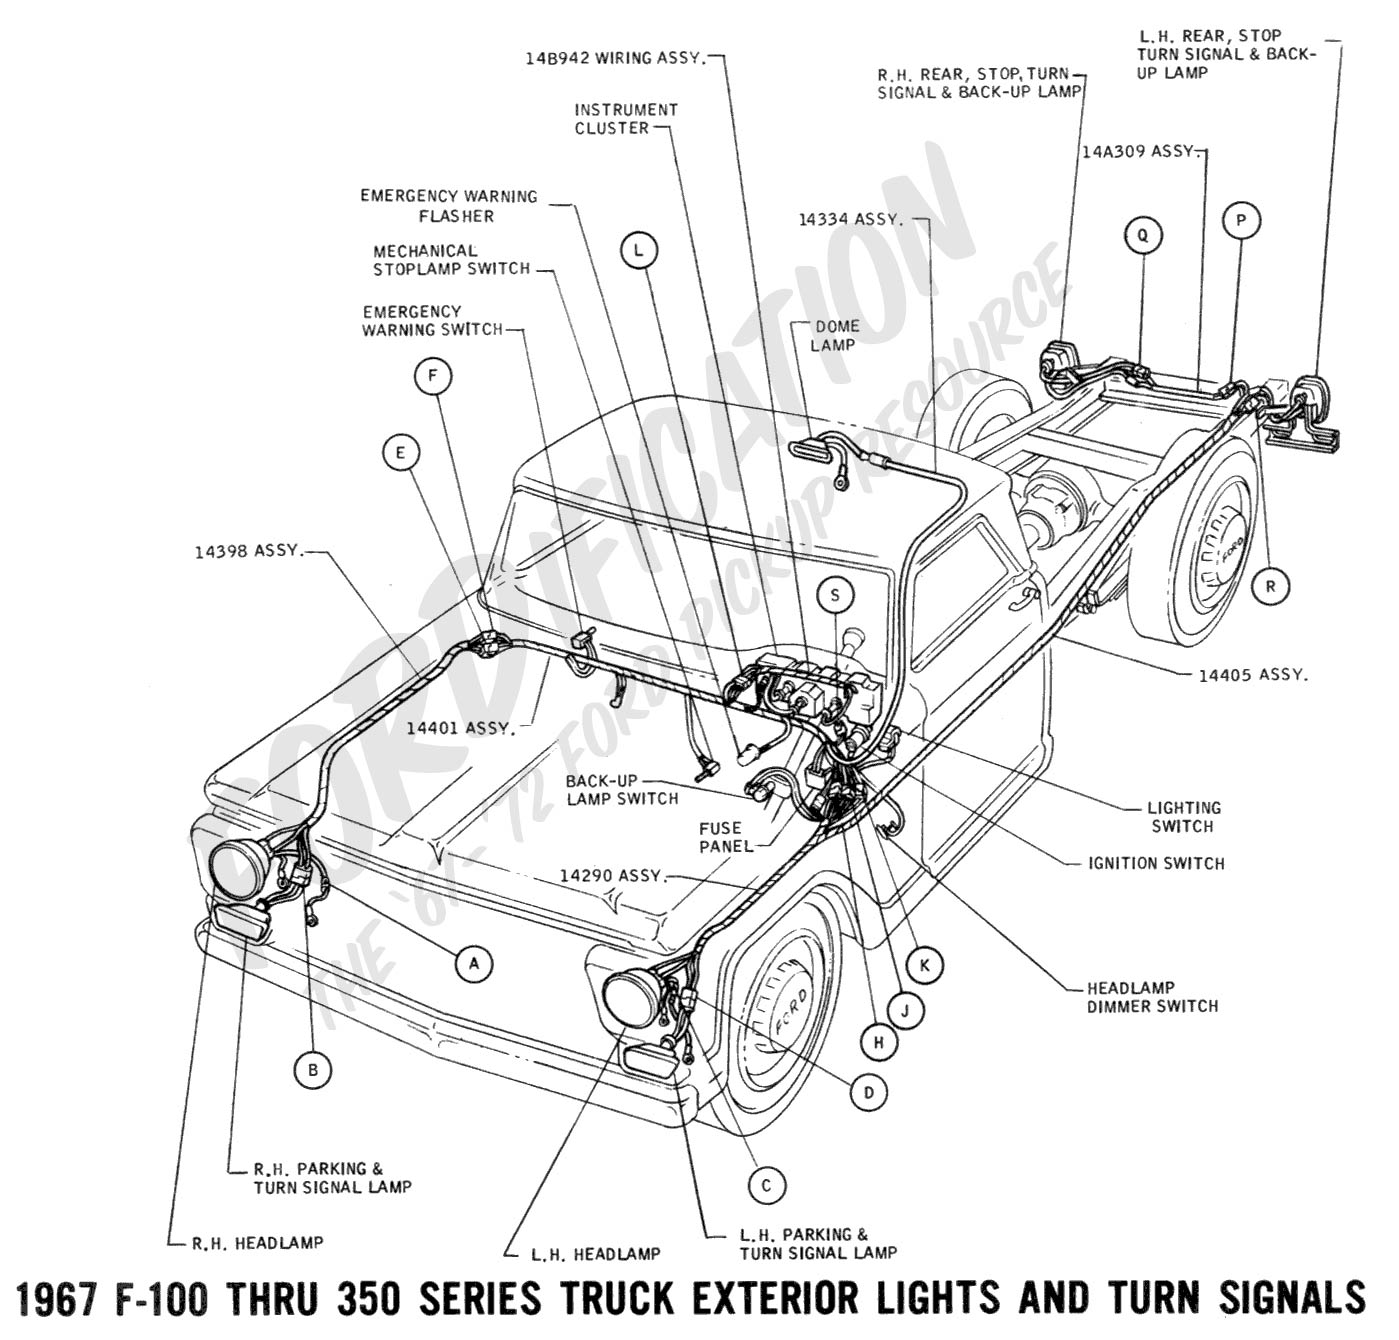 wiring 1967extlights01 ford truck technical drawings and schematics section h wiring 1990 ford truck wiring diagram at gsmx.co